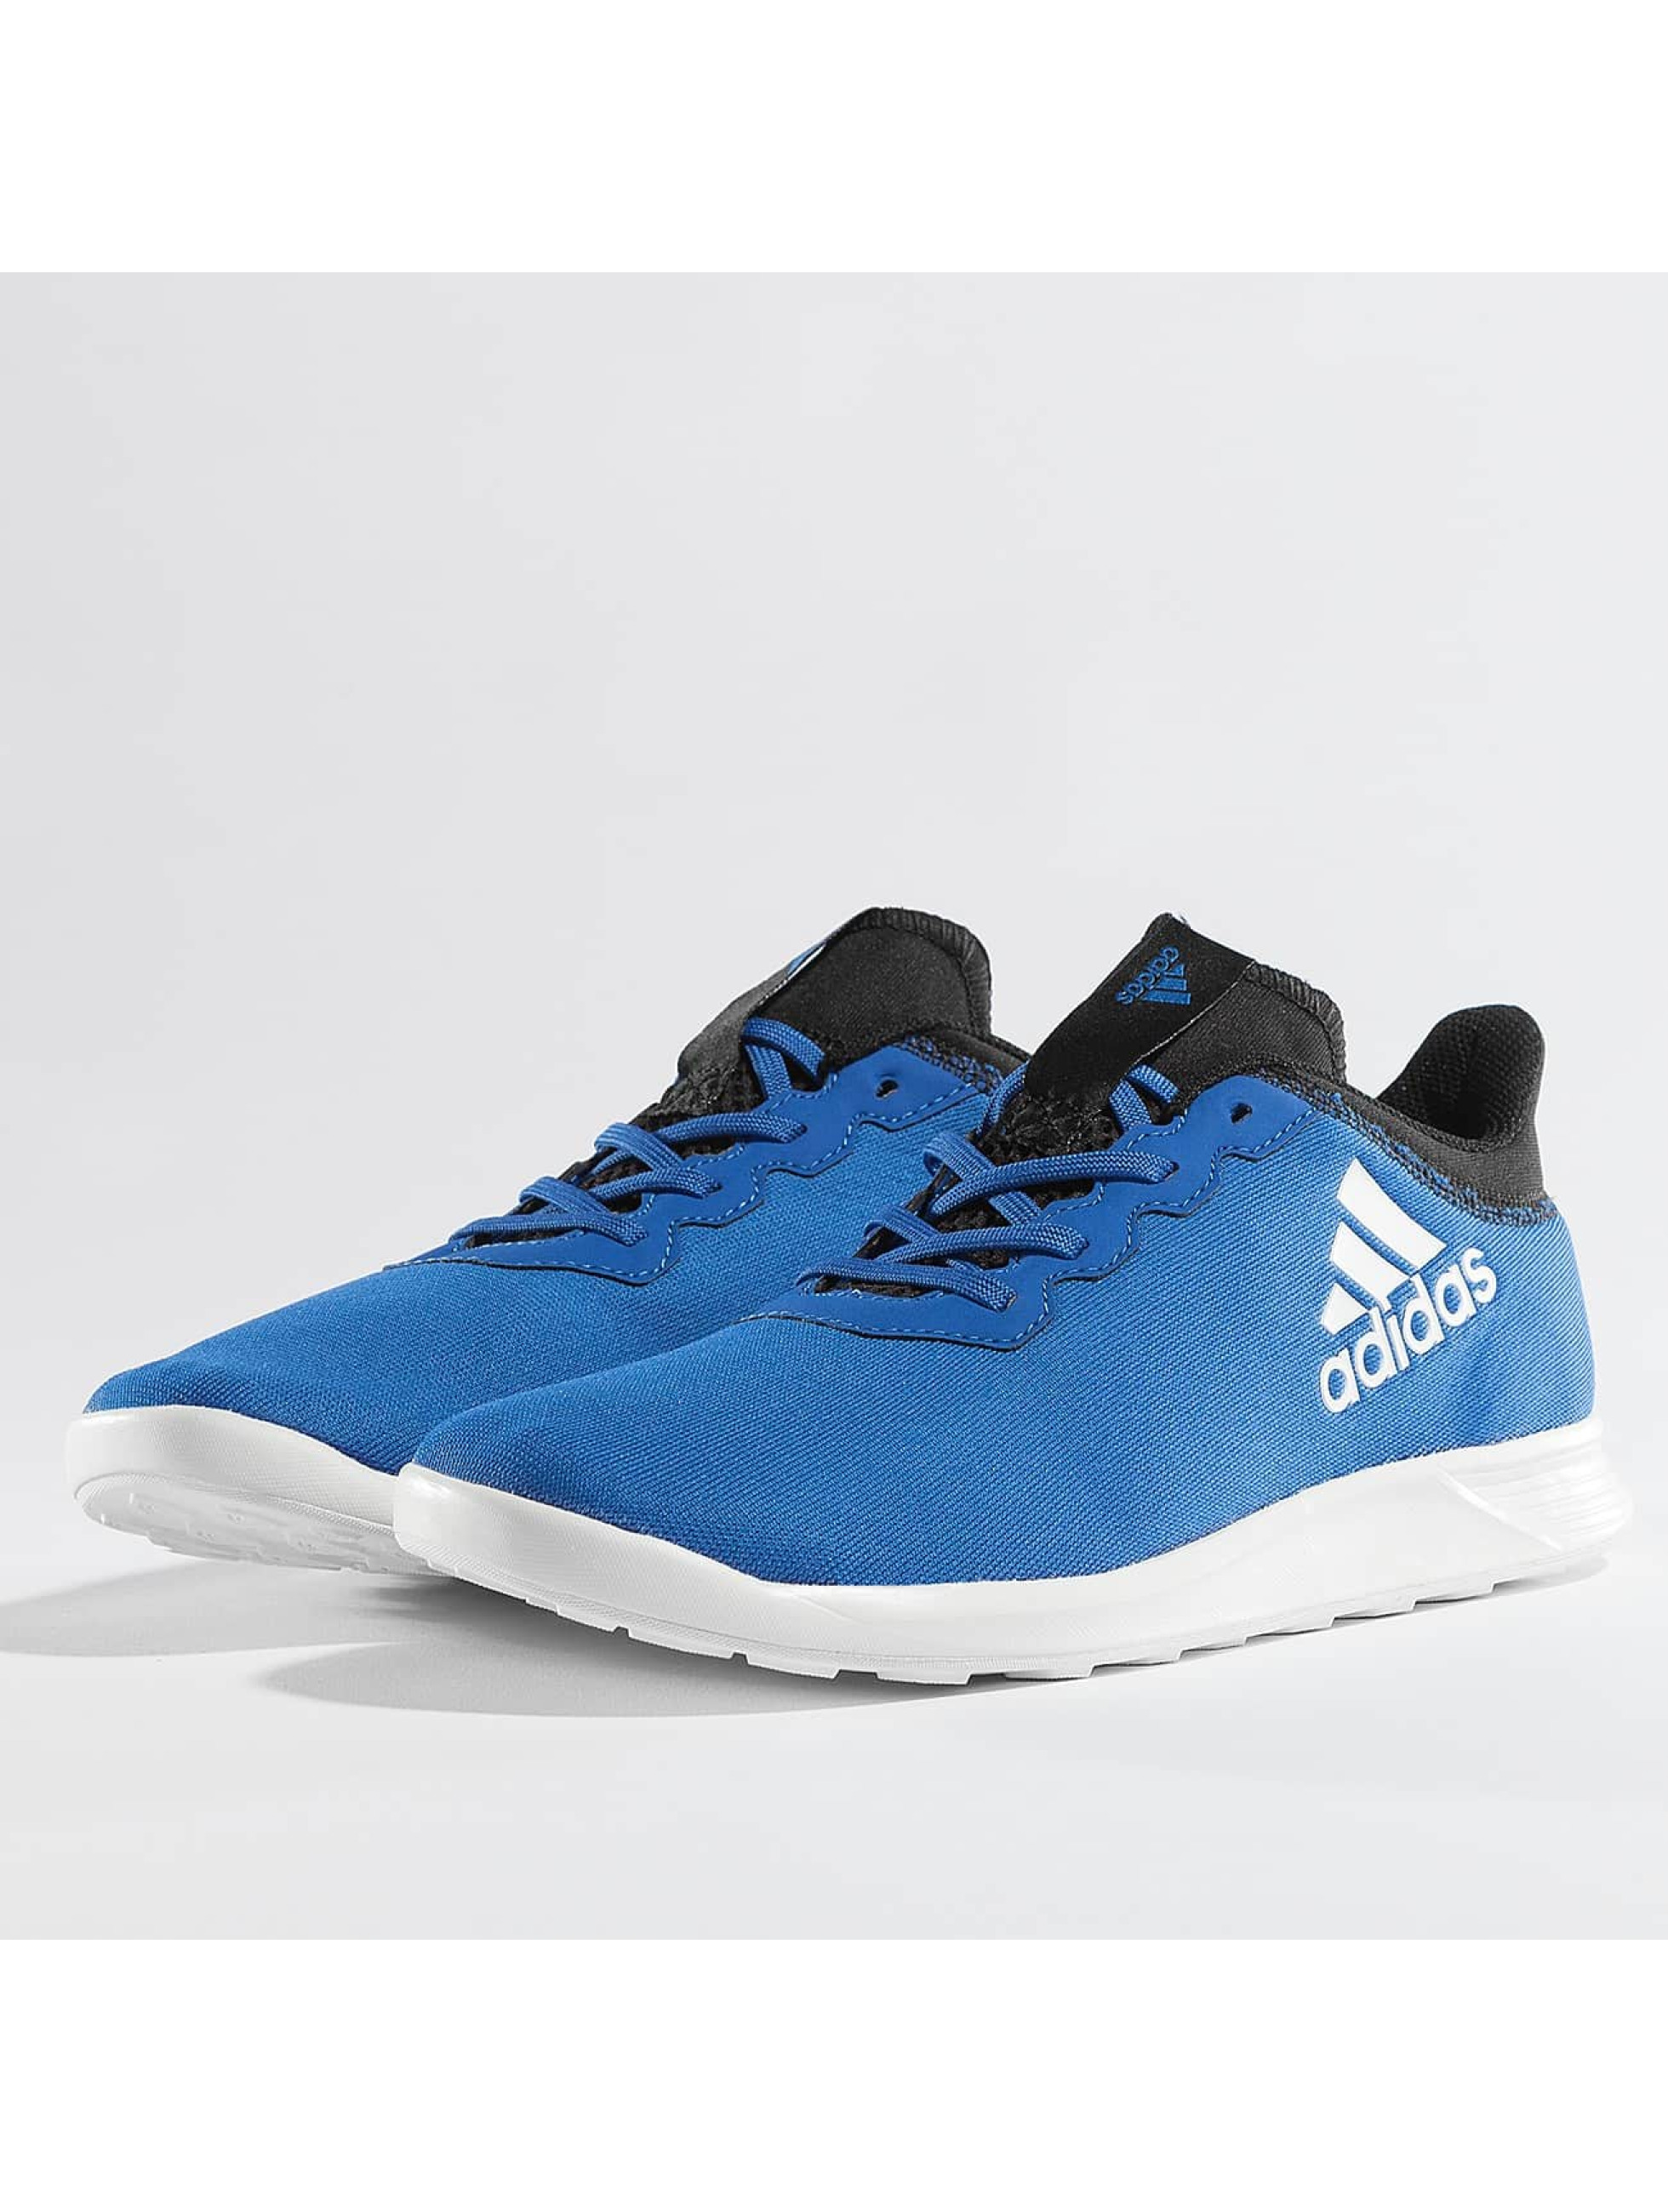 adidas Performance Frauen Sneaker X 16.4 TR in blau